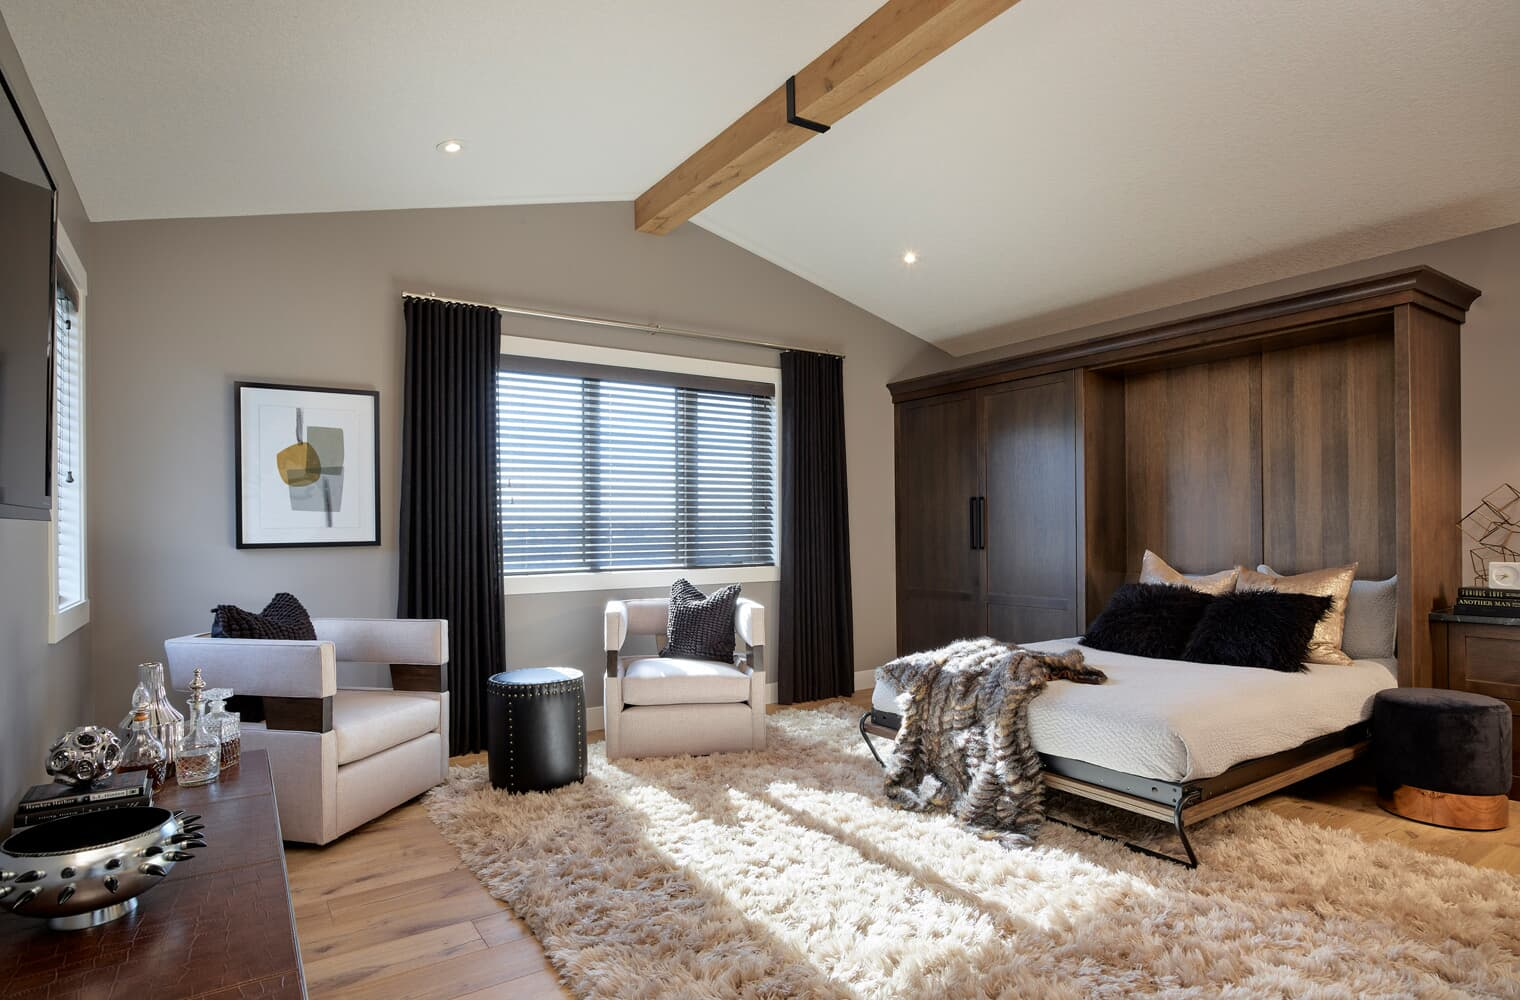 the loft at the sereno estate showhome in cranstons riverstone